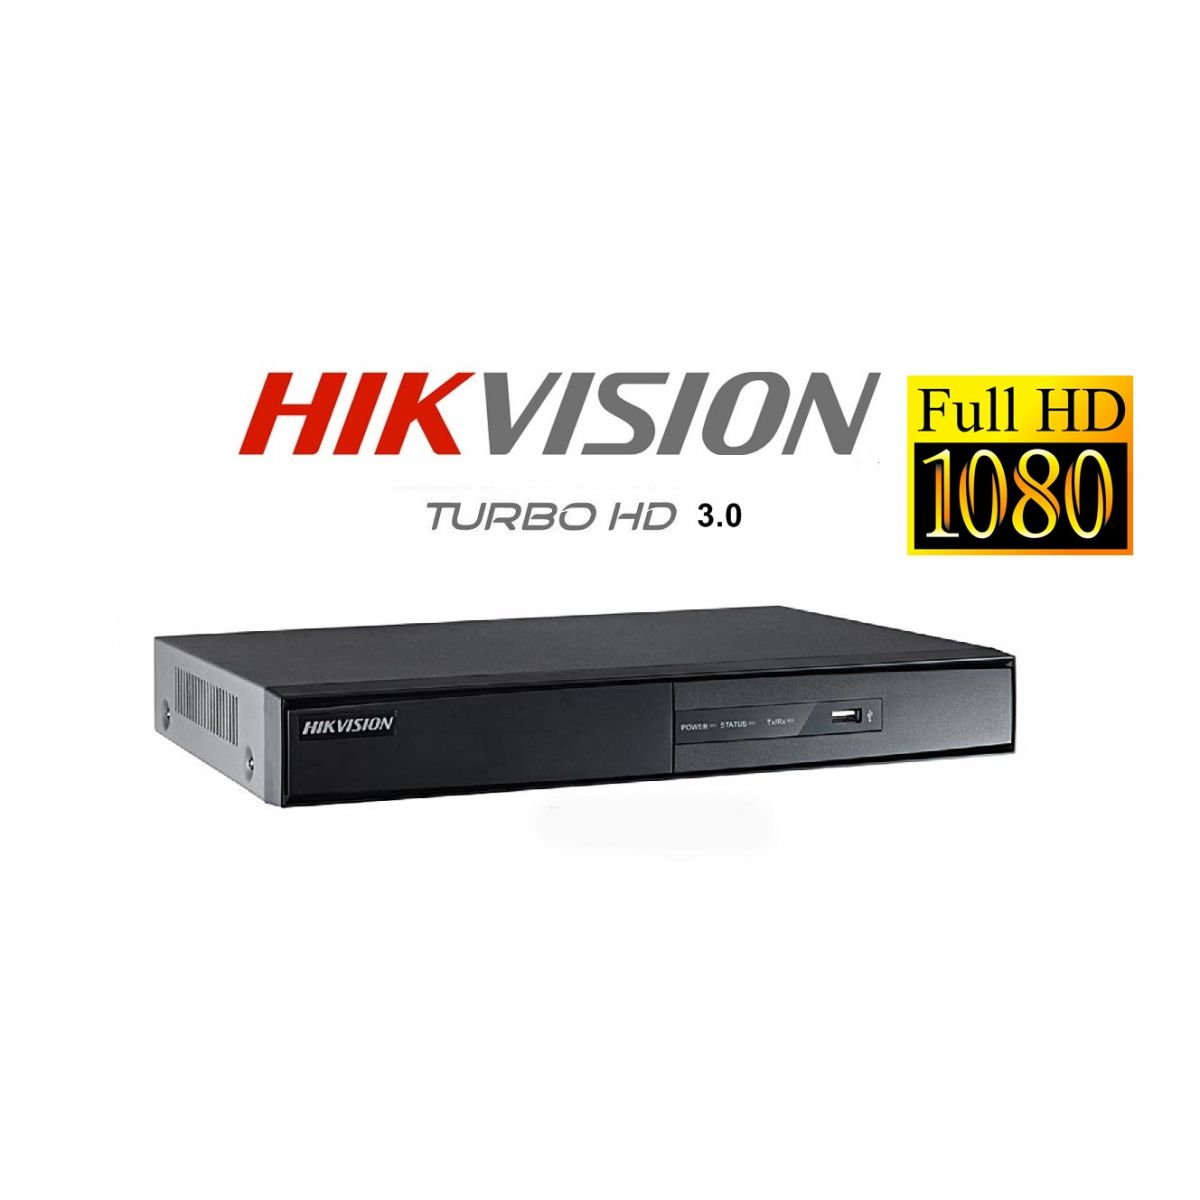 Dvr 8 ch. Hikvision Turbo Hd 3.0 Pentaflex 5x1 Full Hd 1080p